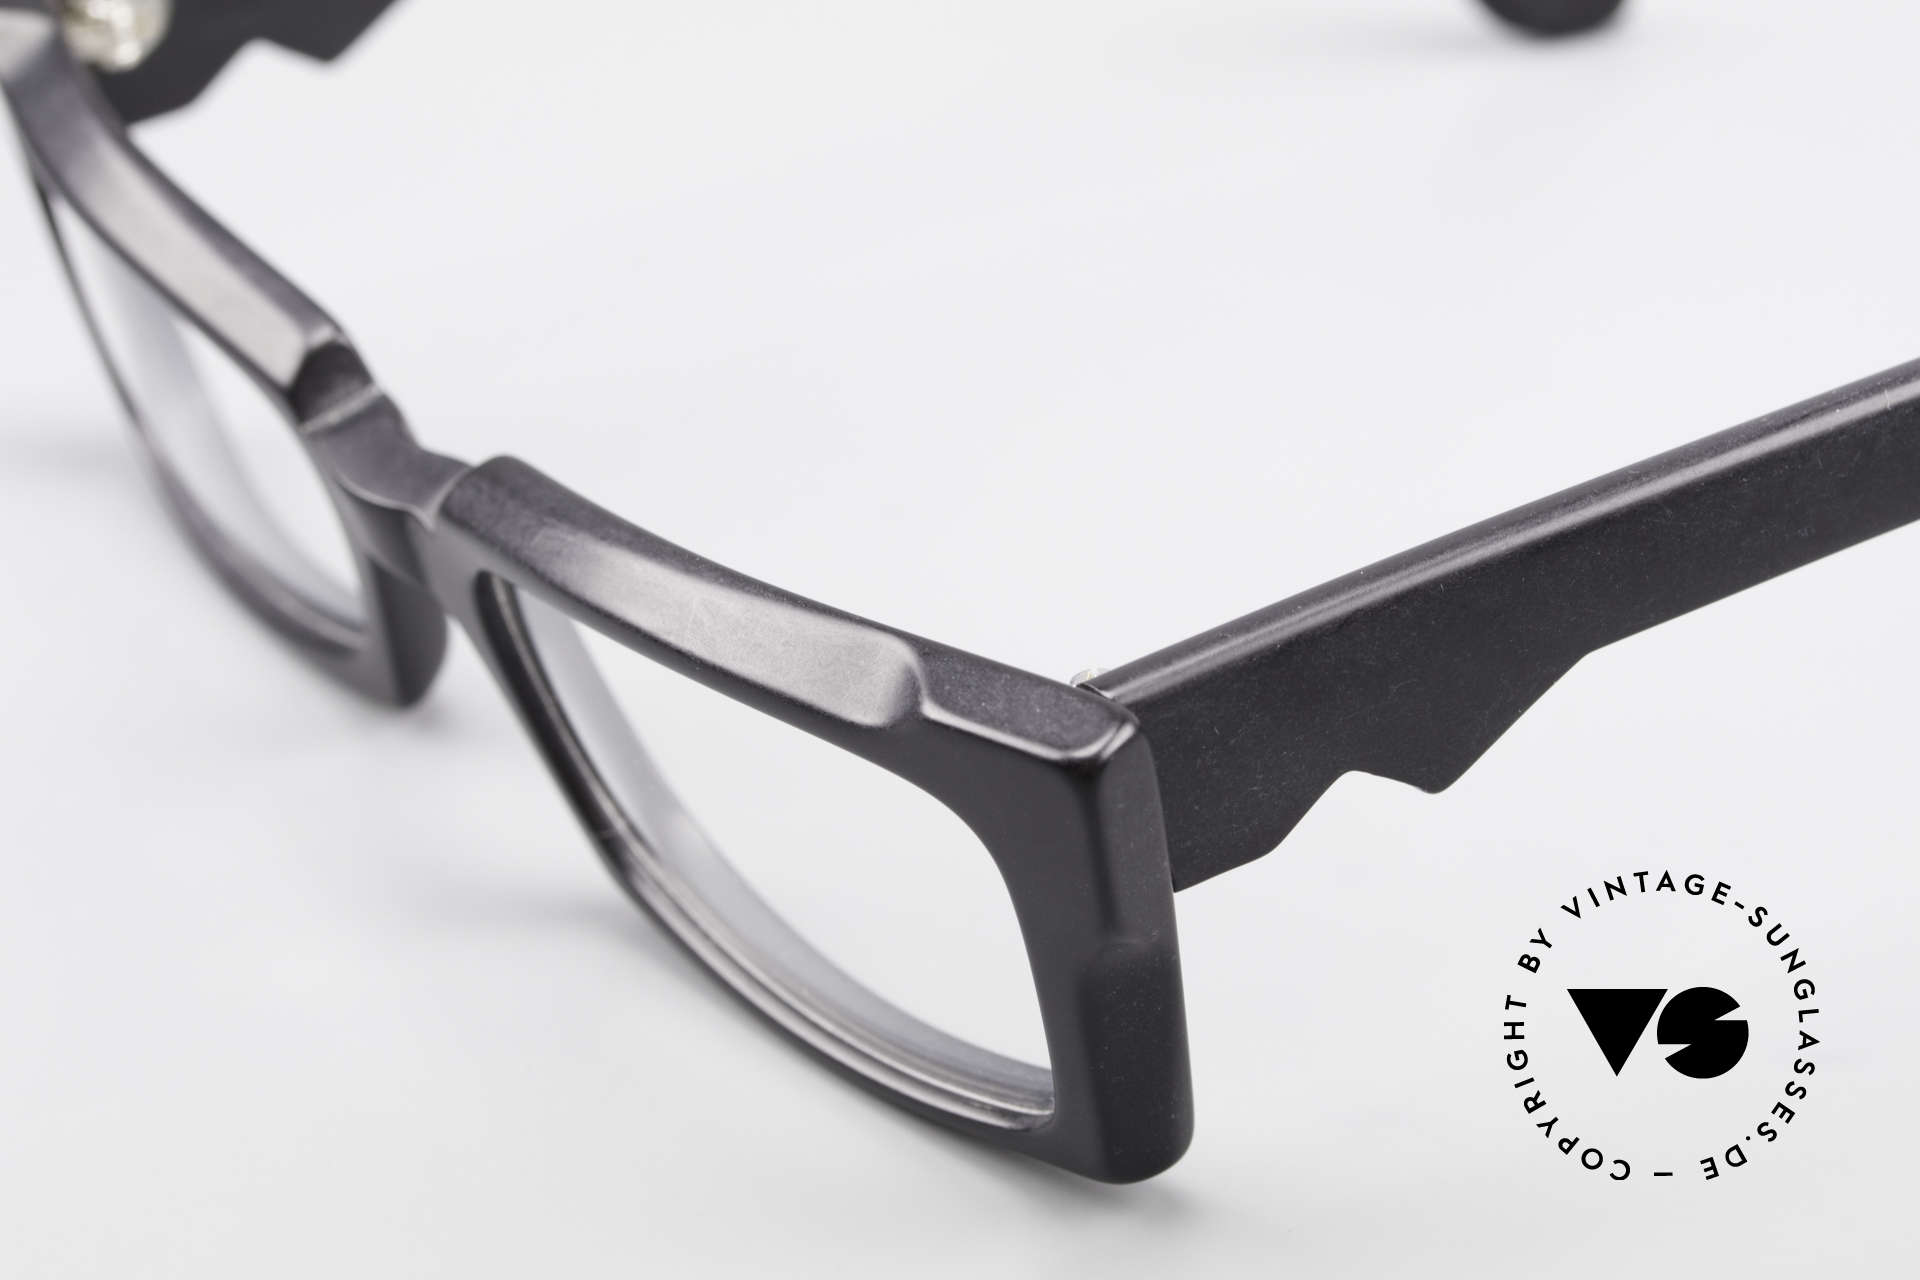 Anne Et Valentin Belphegor Old 80's Glasses True Vintage, this old model comes from the beginning of A&V, Made for Women